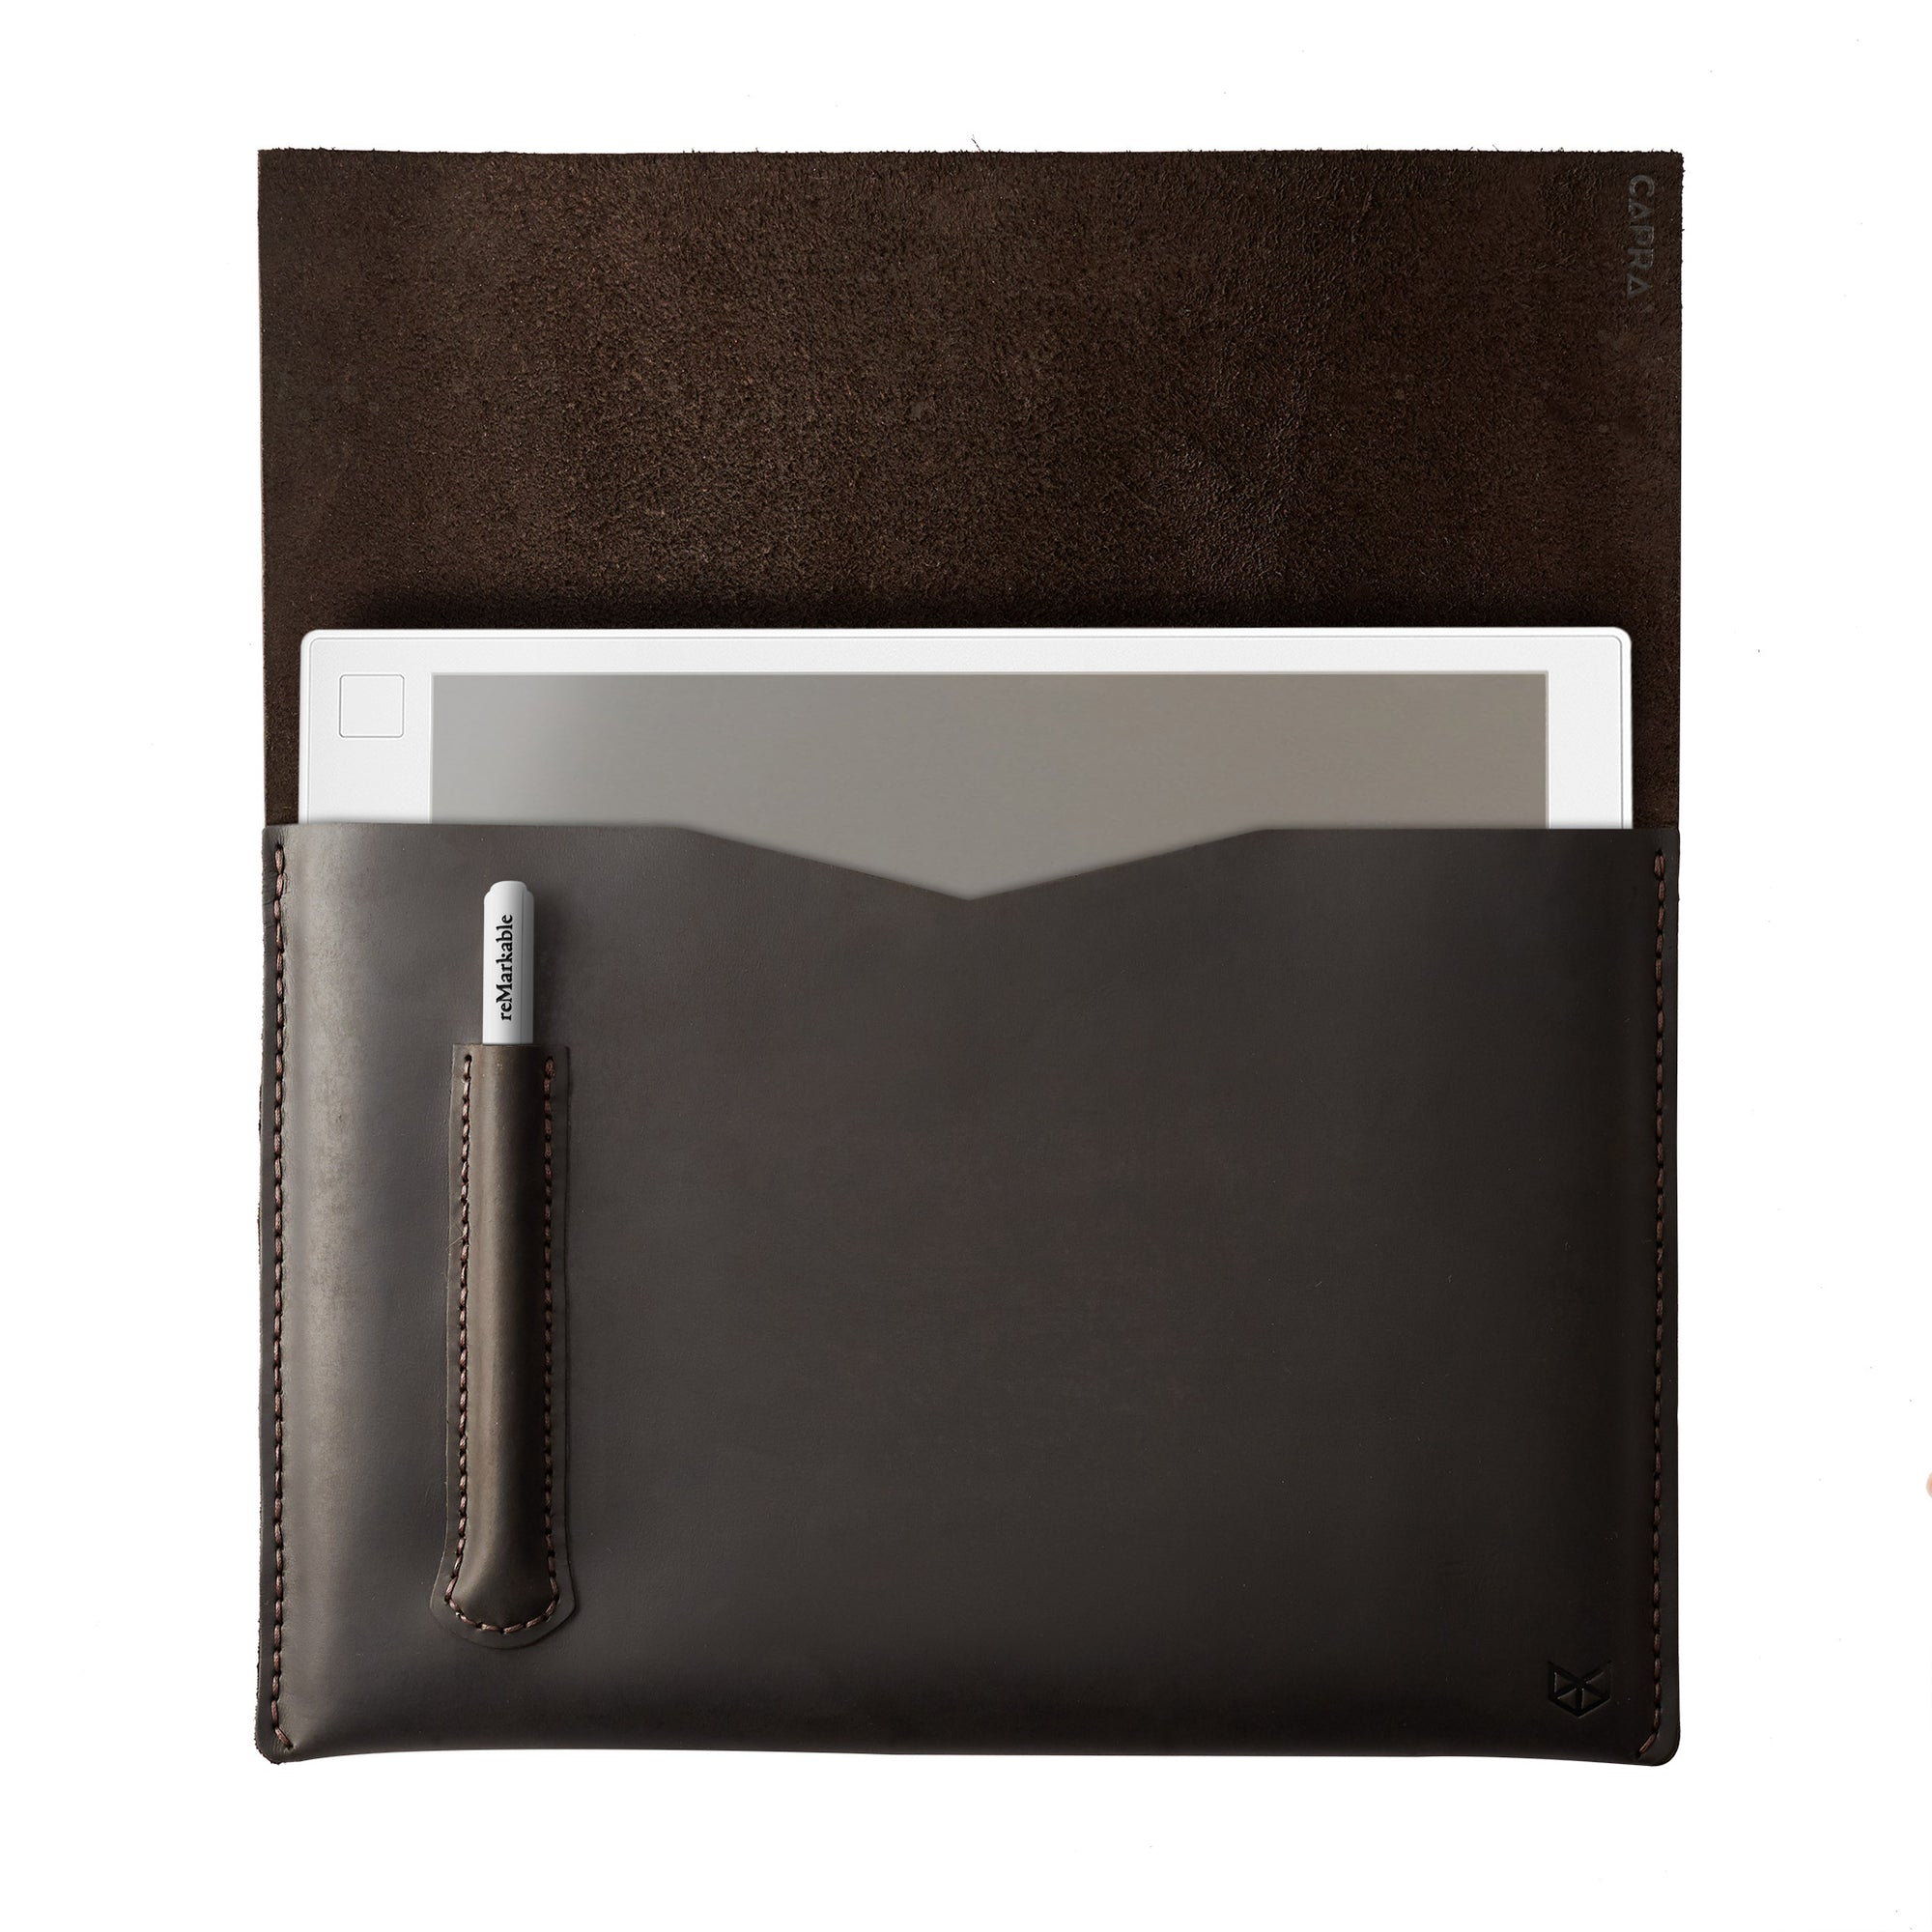 Cover. Brown handcrafted leather reMarkable tablet case. Folio with Marker holder. Paper E-ink tablet minimalist sleeve design.